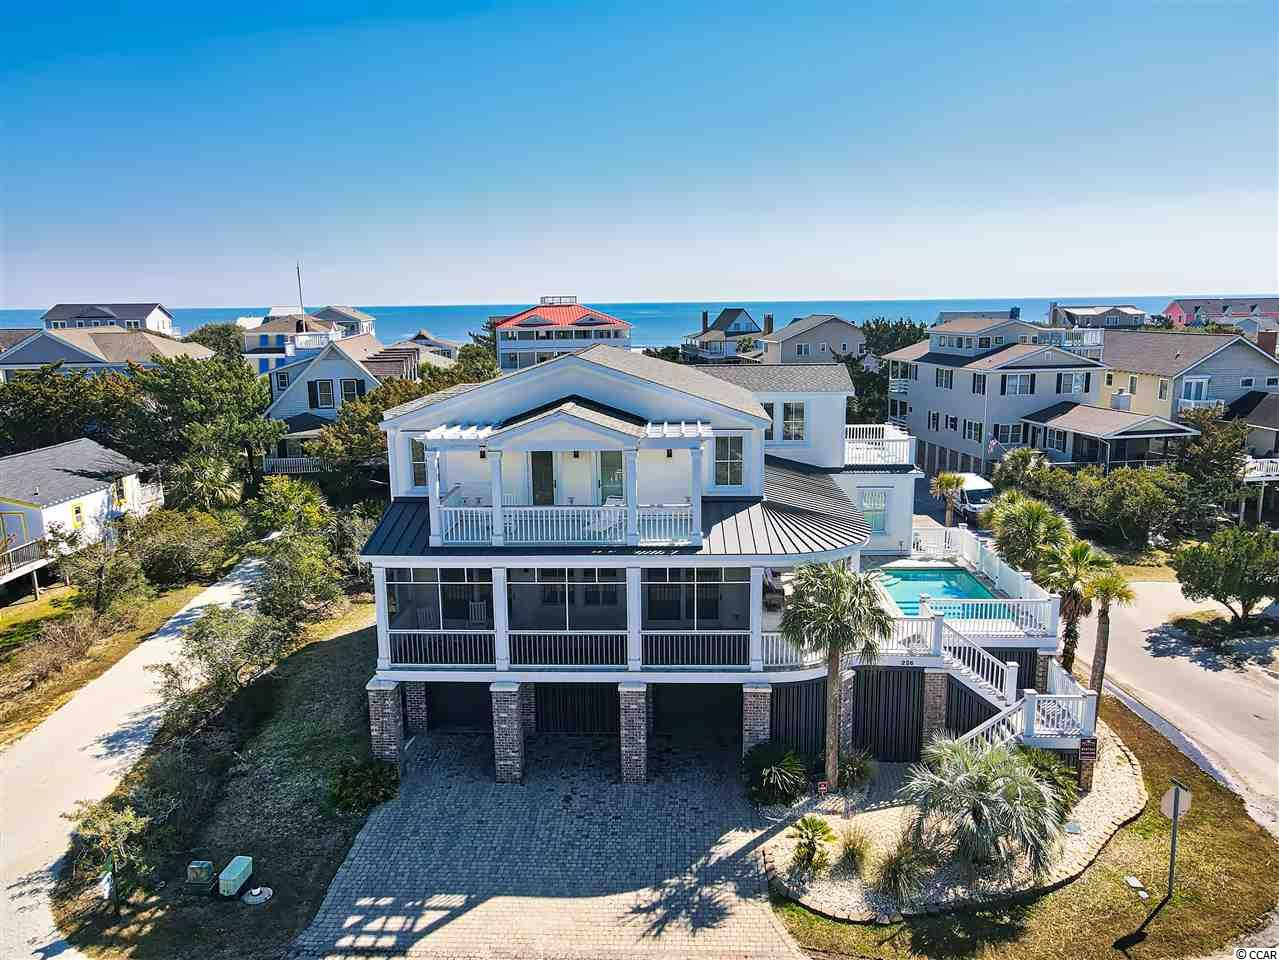 Welcome to 226 Myrtle Avenue in historic Pawleys Island, South Carolina. A 6 bed / 6.5 bath home with beautiful sunset views overlooking Pawleys creek. With the beach only steps away and a boat-ramp down the street, owners and guests will enjoy some of the best access to water and recreation that the island has to offer. Before entering the main level of the home, you will notice a raised, outdoor pool with creek views that is perfect for cooling off after a day on the beach. Upon entry, visitors will be greeted with charming heart-pine floors and beams, high ceilings, and a dual-sided brick fireplace with gas logs. With a gas cooktop by Wolfe, a Sub-Zero refrigerator and a large center island, the kitchen is fully-equipped for large gatherings and entertaining. The kitchen also features custom cabinetry and a double farmhouse sink. The owners-suite is located on the first floor and has a beautiful bath with dual sinks and a spacious walk-in shower with double heads. The first floor also has a guest suite with a private bath and a tub/shower. Moving upstairs, guests will appreciate the heart-pine flooring throughout and wainscoting down the hallways. The second floor has a total of four bedrooms, including a second master suite with a garden tub, a walk-in shower and a porch with views of the salt marsh. And if you're touring the home, don't miss the upstairs guest bedroom that leads to a sundeck with an outstanding marsh view and a peek of the ocean. Other amenities include two laundry rooms, wet bar, an upgraded three-stop elevator, Ipe exterior hardwood decking, generous parking/storage below and an outdoor shower. The home is in excellent condition and is being sold fully furnished. Don't miss this opportunity to own a luxury home on one of South Carolina's most cherished beaches.